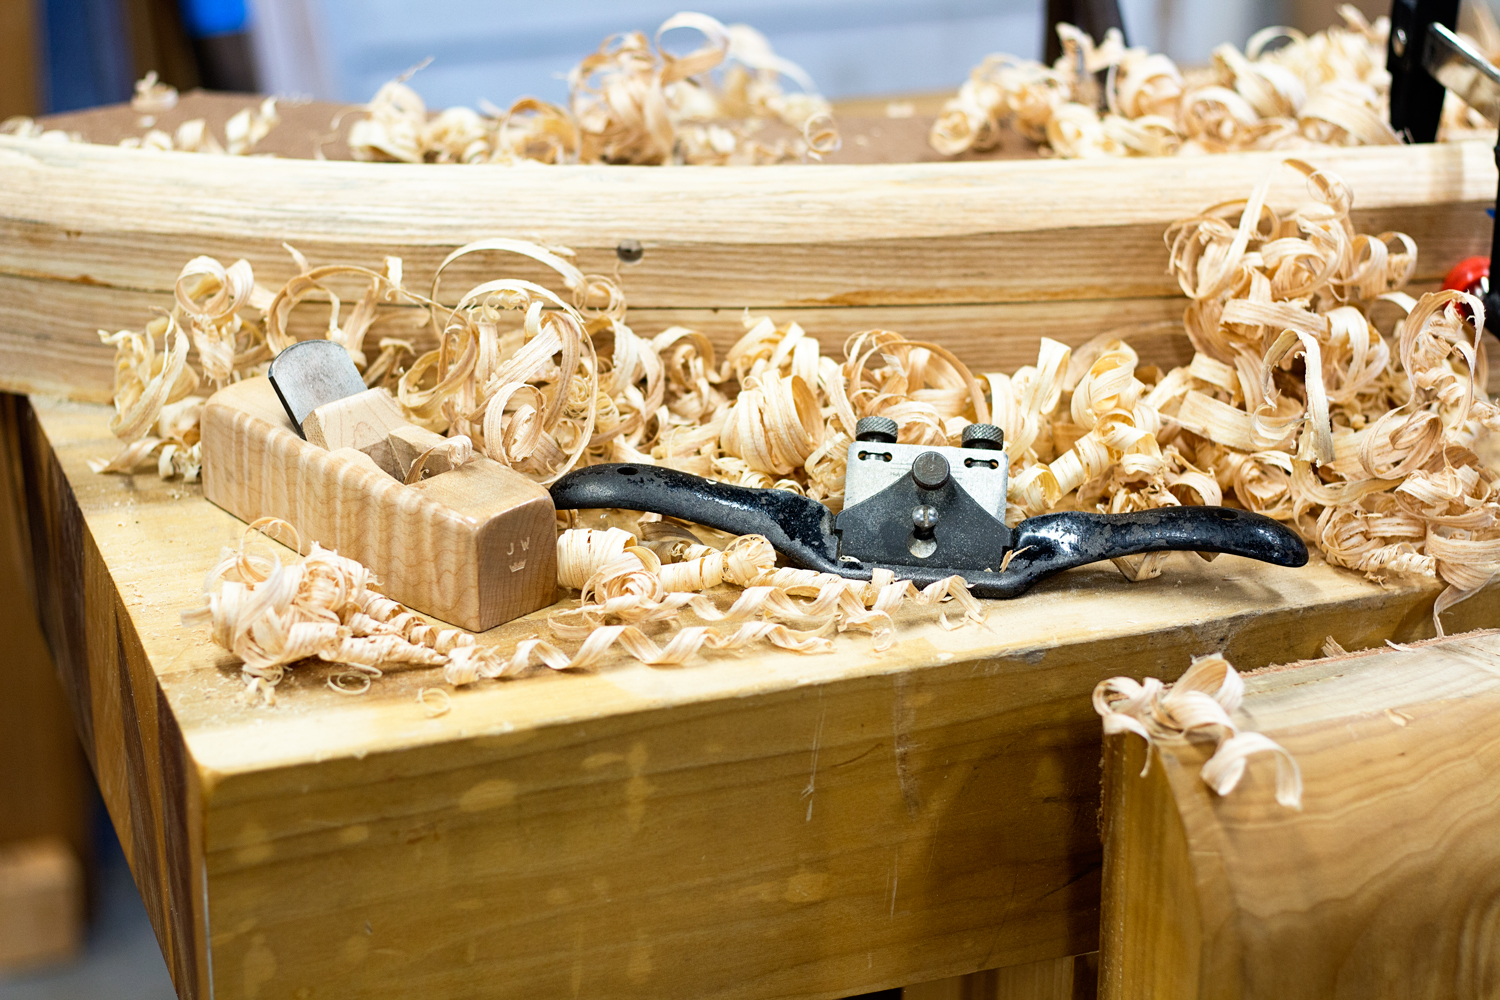 The outer runners have heavily chamfered edges that mimic the curves of the XK120 body. I use my Crown Plane block plane set to a very heavy cut to remove most of the waste, followed by a Stanley 151 spokeshave set to a fine cut. Takes only a few minutes to remove a lot of material